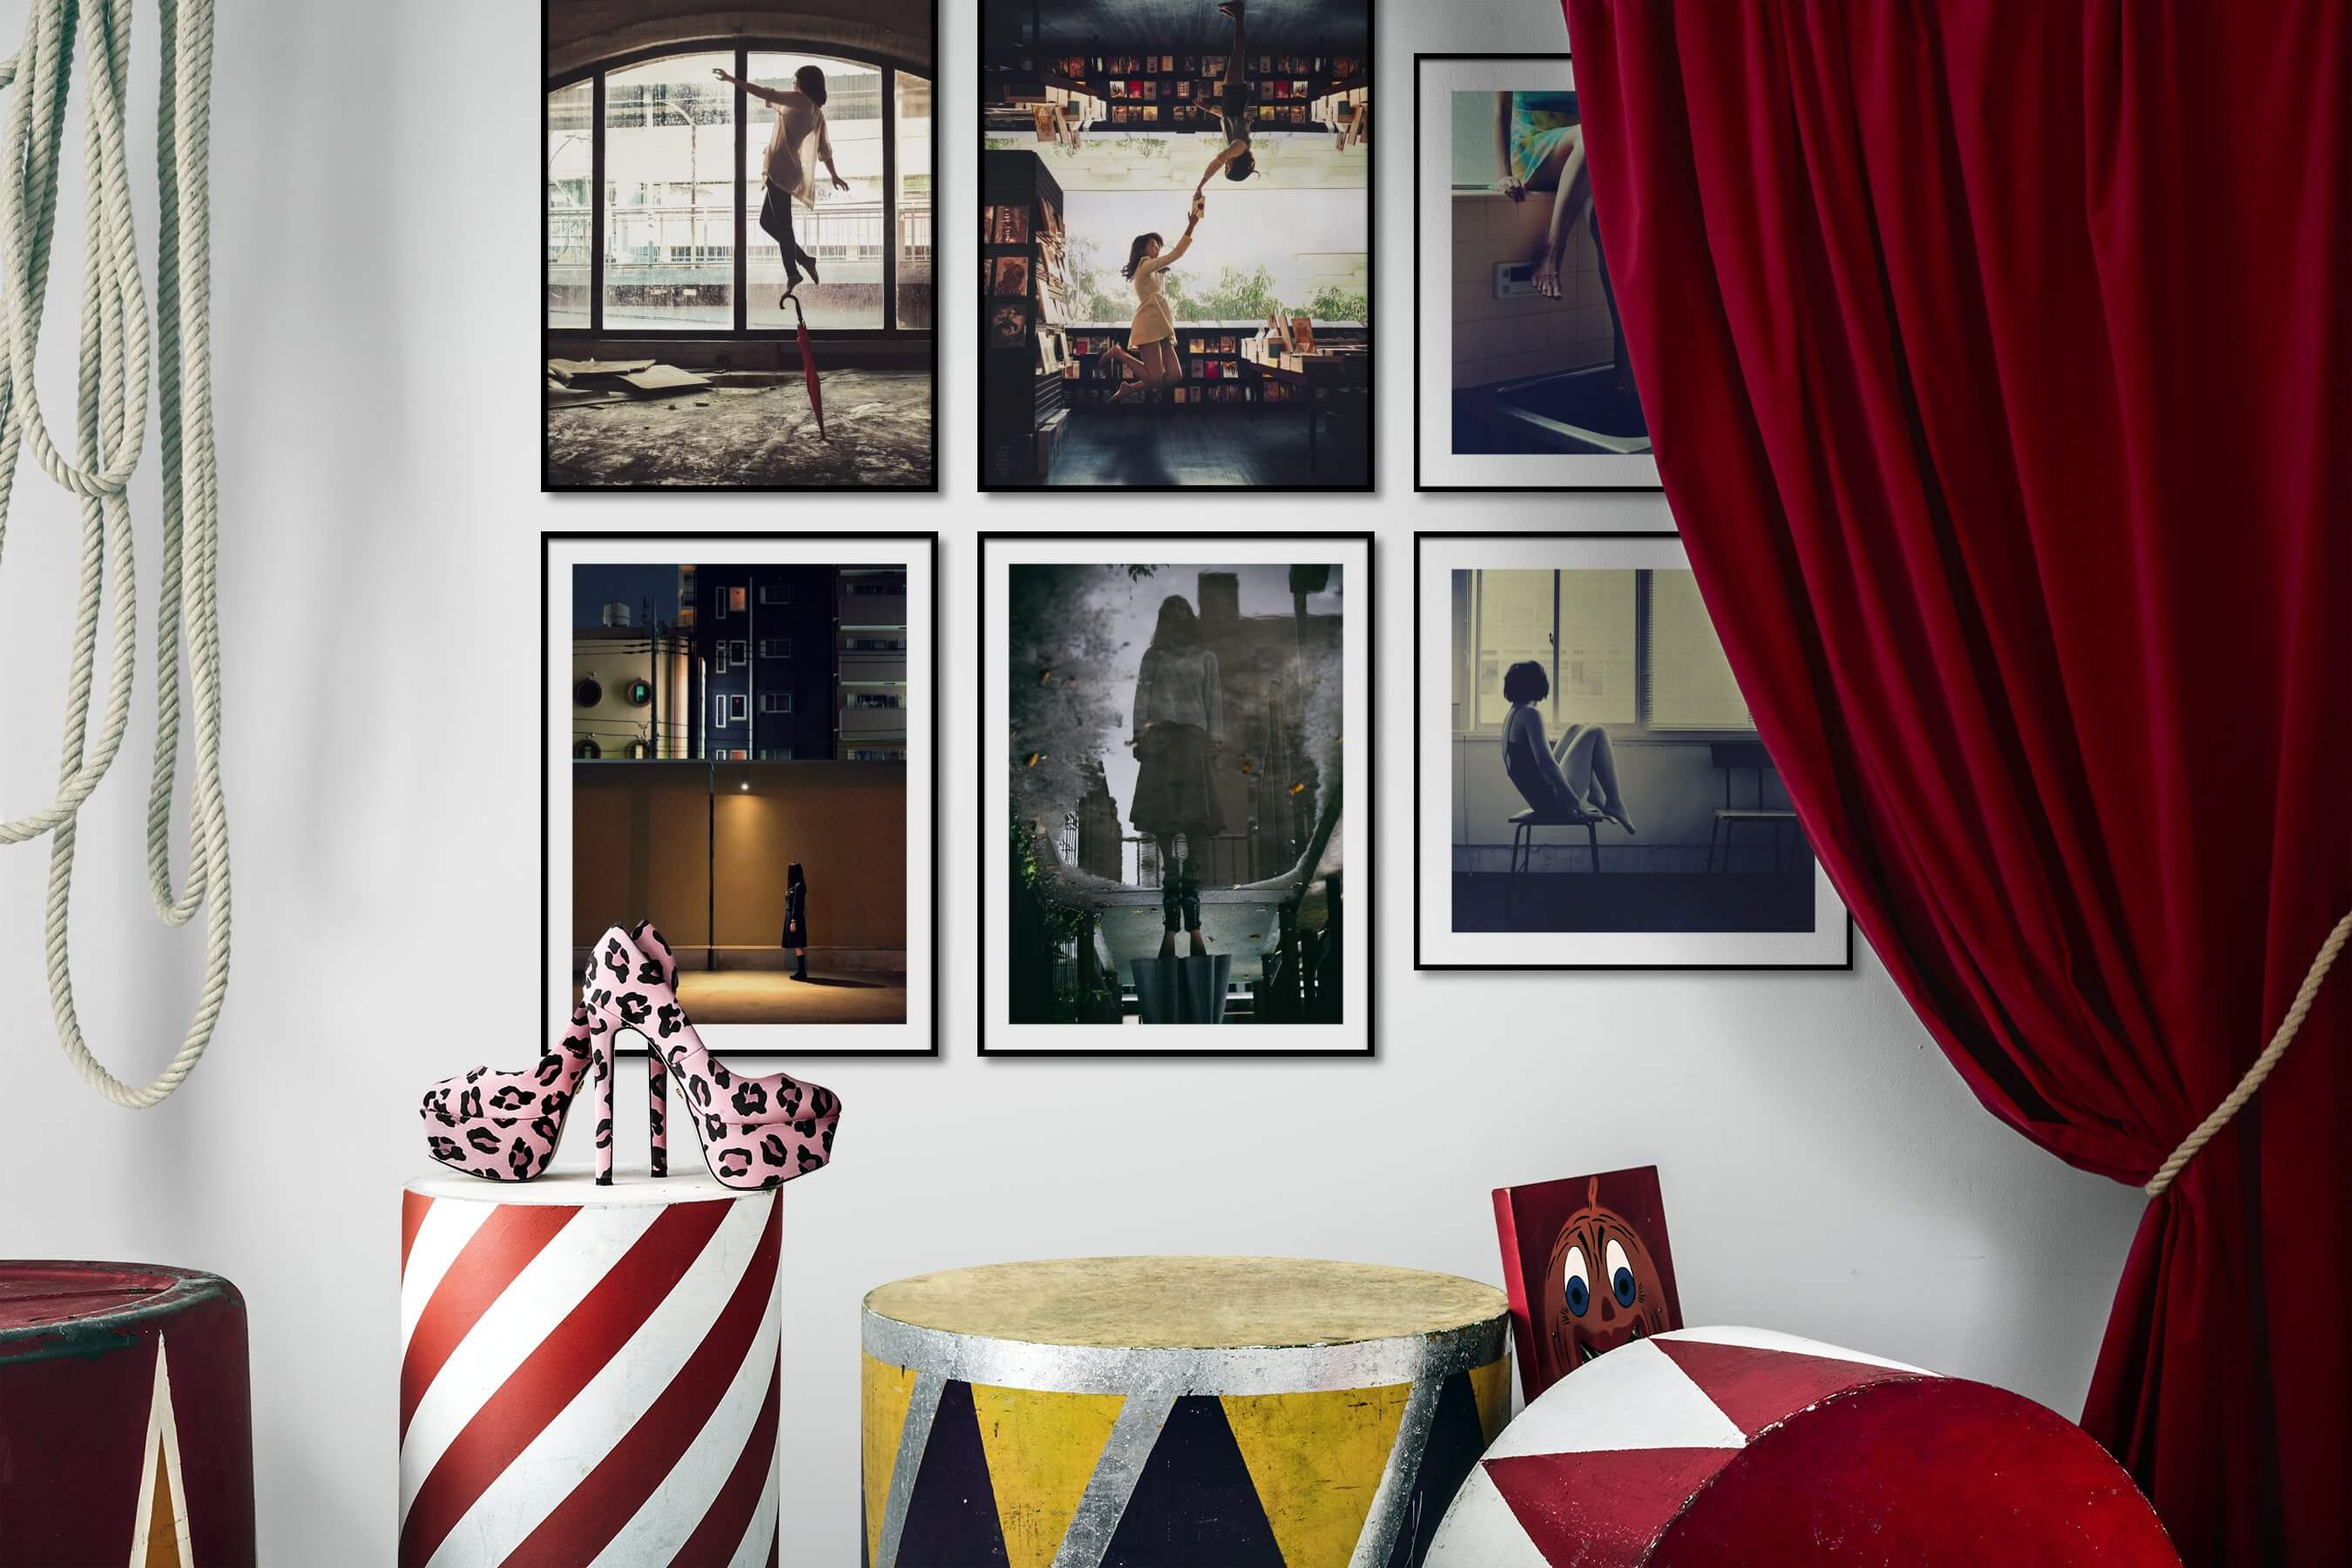 Gallery wall idea with six framed pictures arranged on a wall depicting Artsy, City Life, and For the Moderate